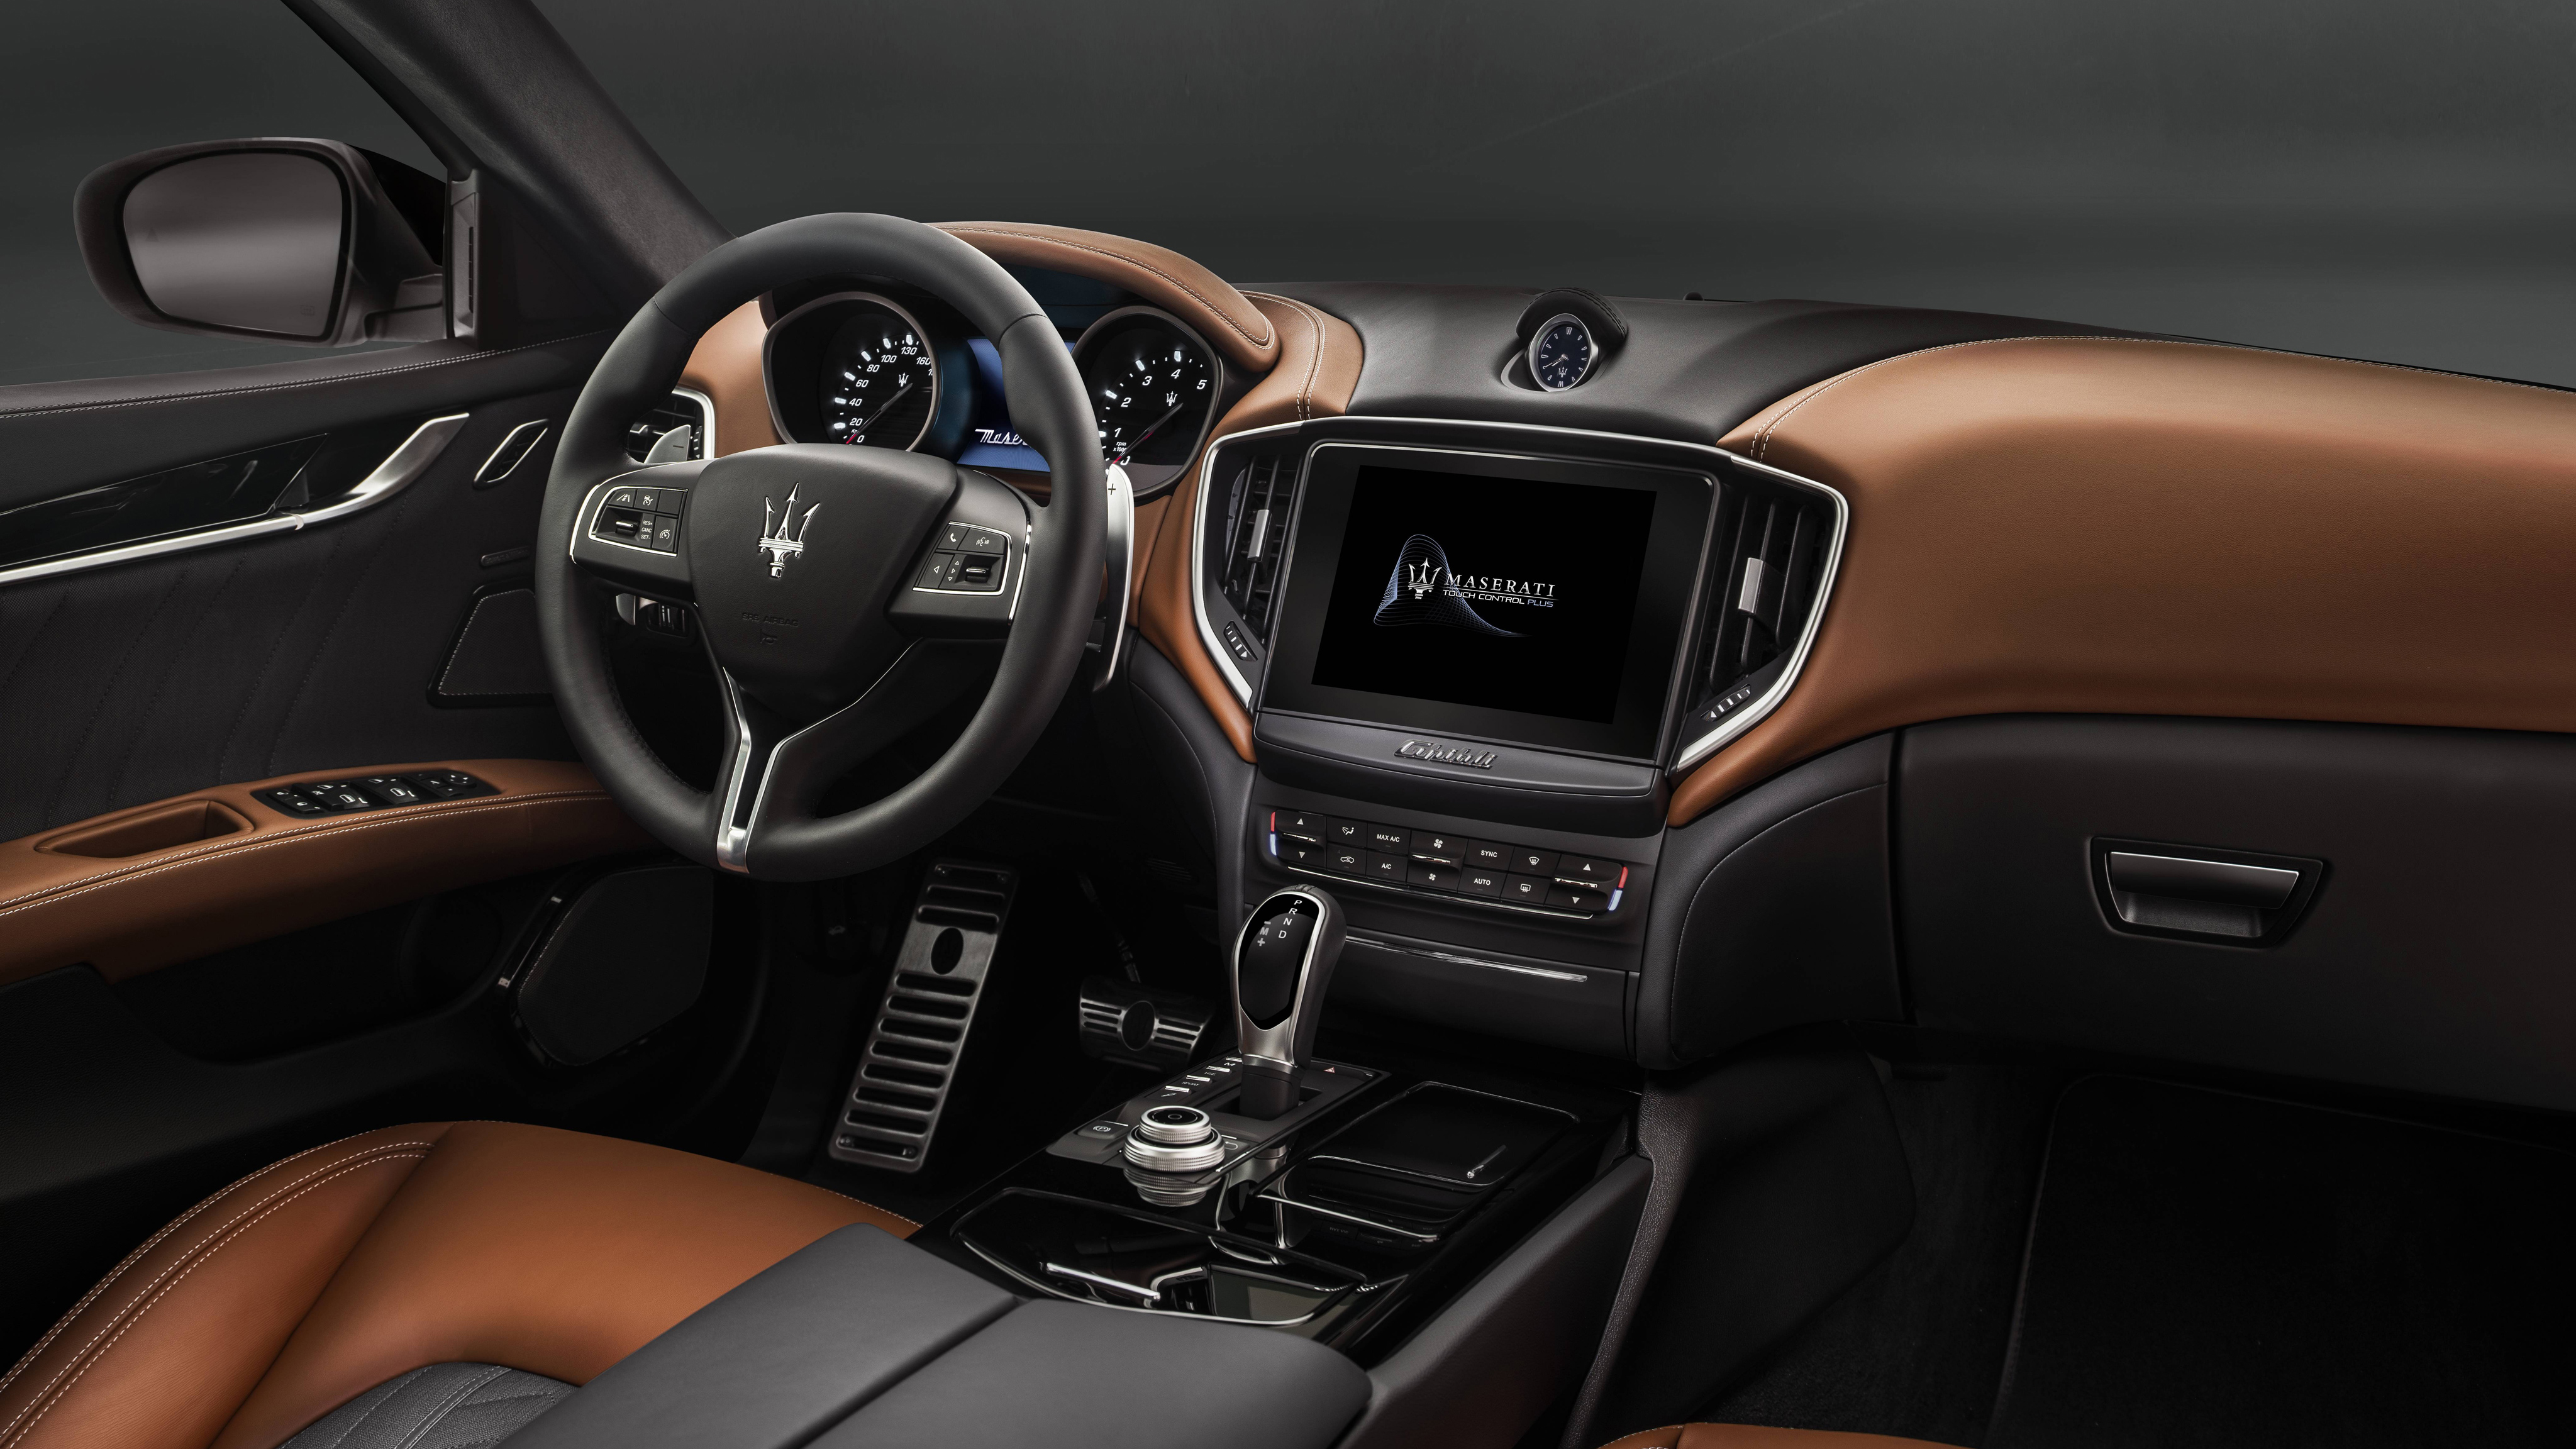 2018 maserati ghibli granlusso interior wallpaper hd car wallpapers id 8539. Black Bedroom Furniture Sets. Home Design Ideas